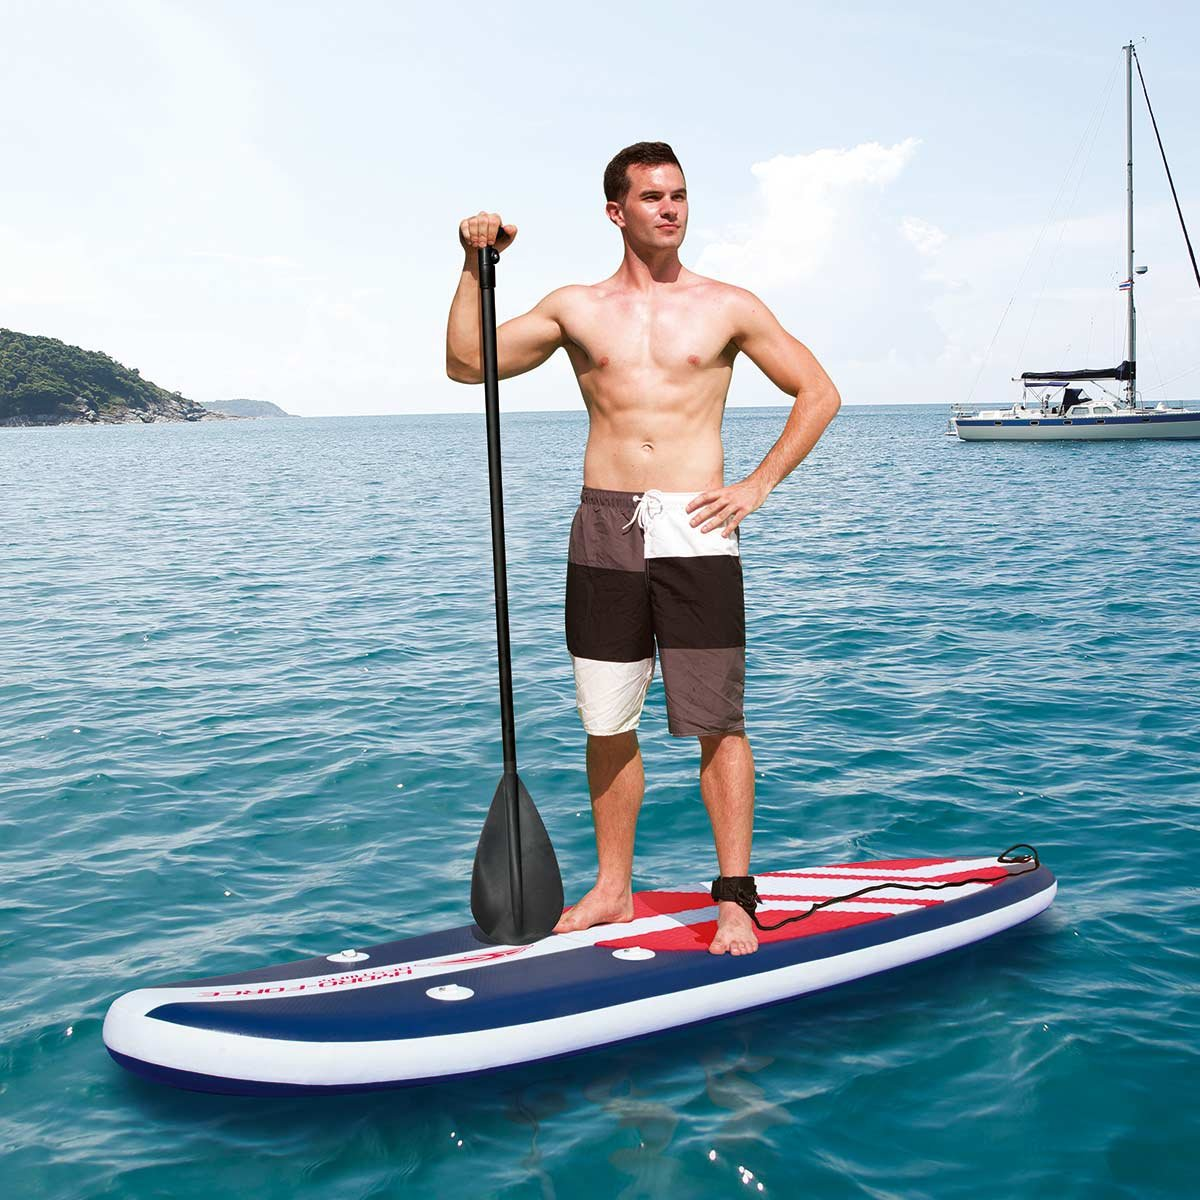 Bestway 65076 - Tabla Paddle Surf Bestway Long Tail SUP (335 x 76 x 15 cm) con remo largo de aluminio, inflador manual y bolsa de transporte: Amazon.es: ...